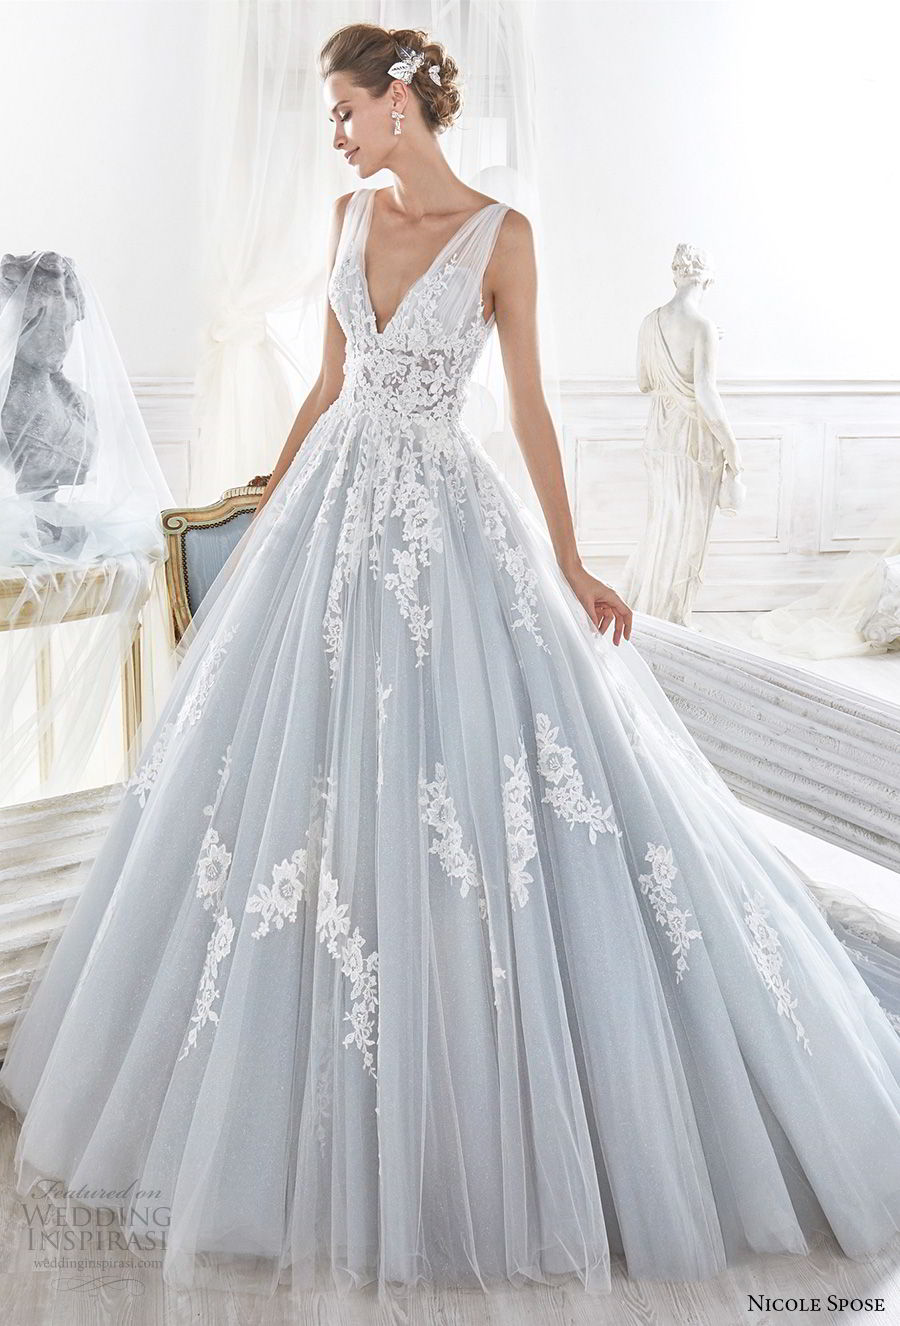 nicole spose 2018 bridal sleeveless v neck heavily embellished bodice romantic blue a line wedding dress open v back chapel train (9) mv